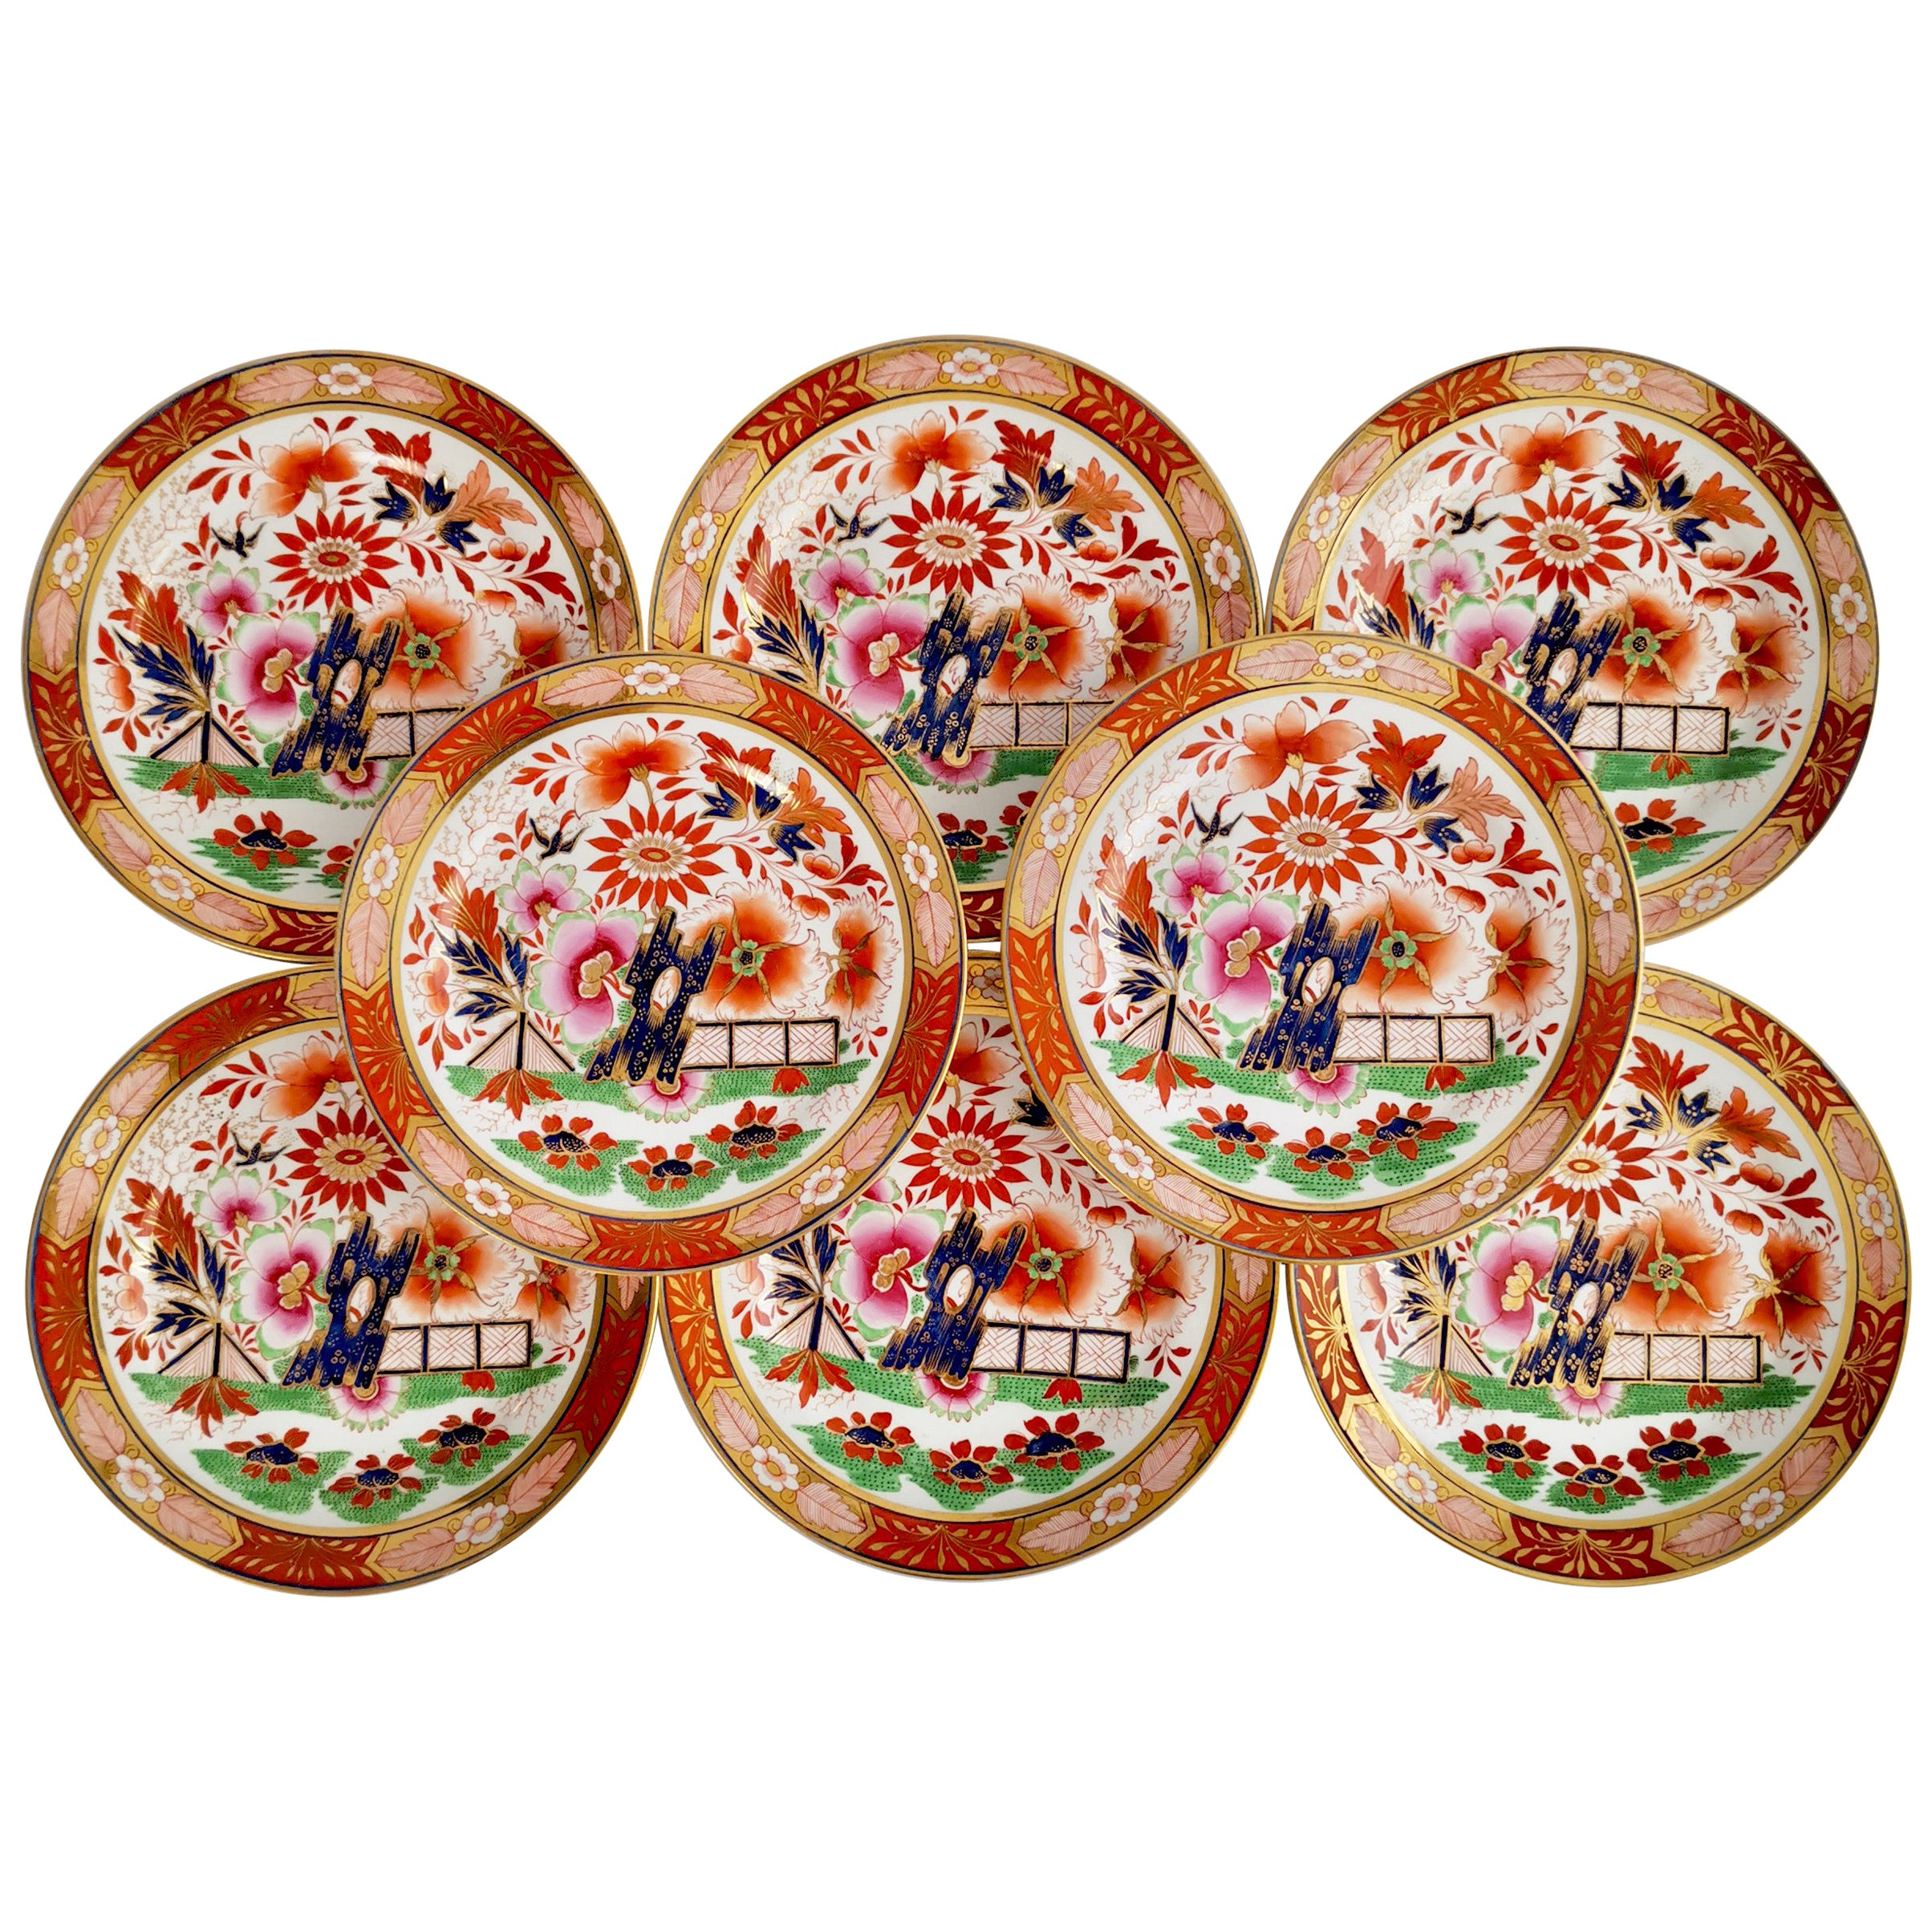 Set of 8 Barr Flight & Barr Porcelain Plates, Imari Fence, Regency, 1811-1813